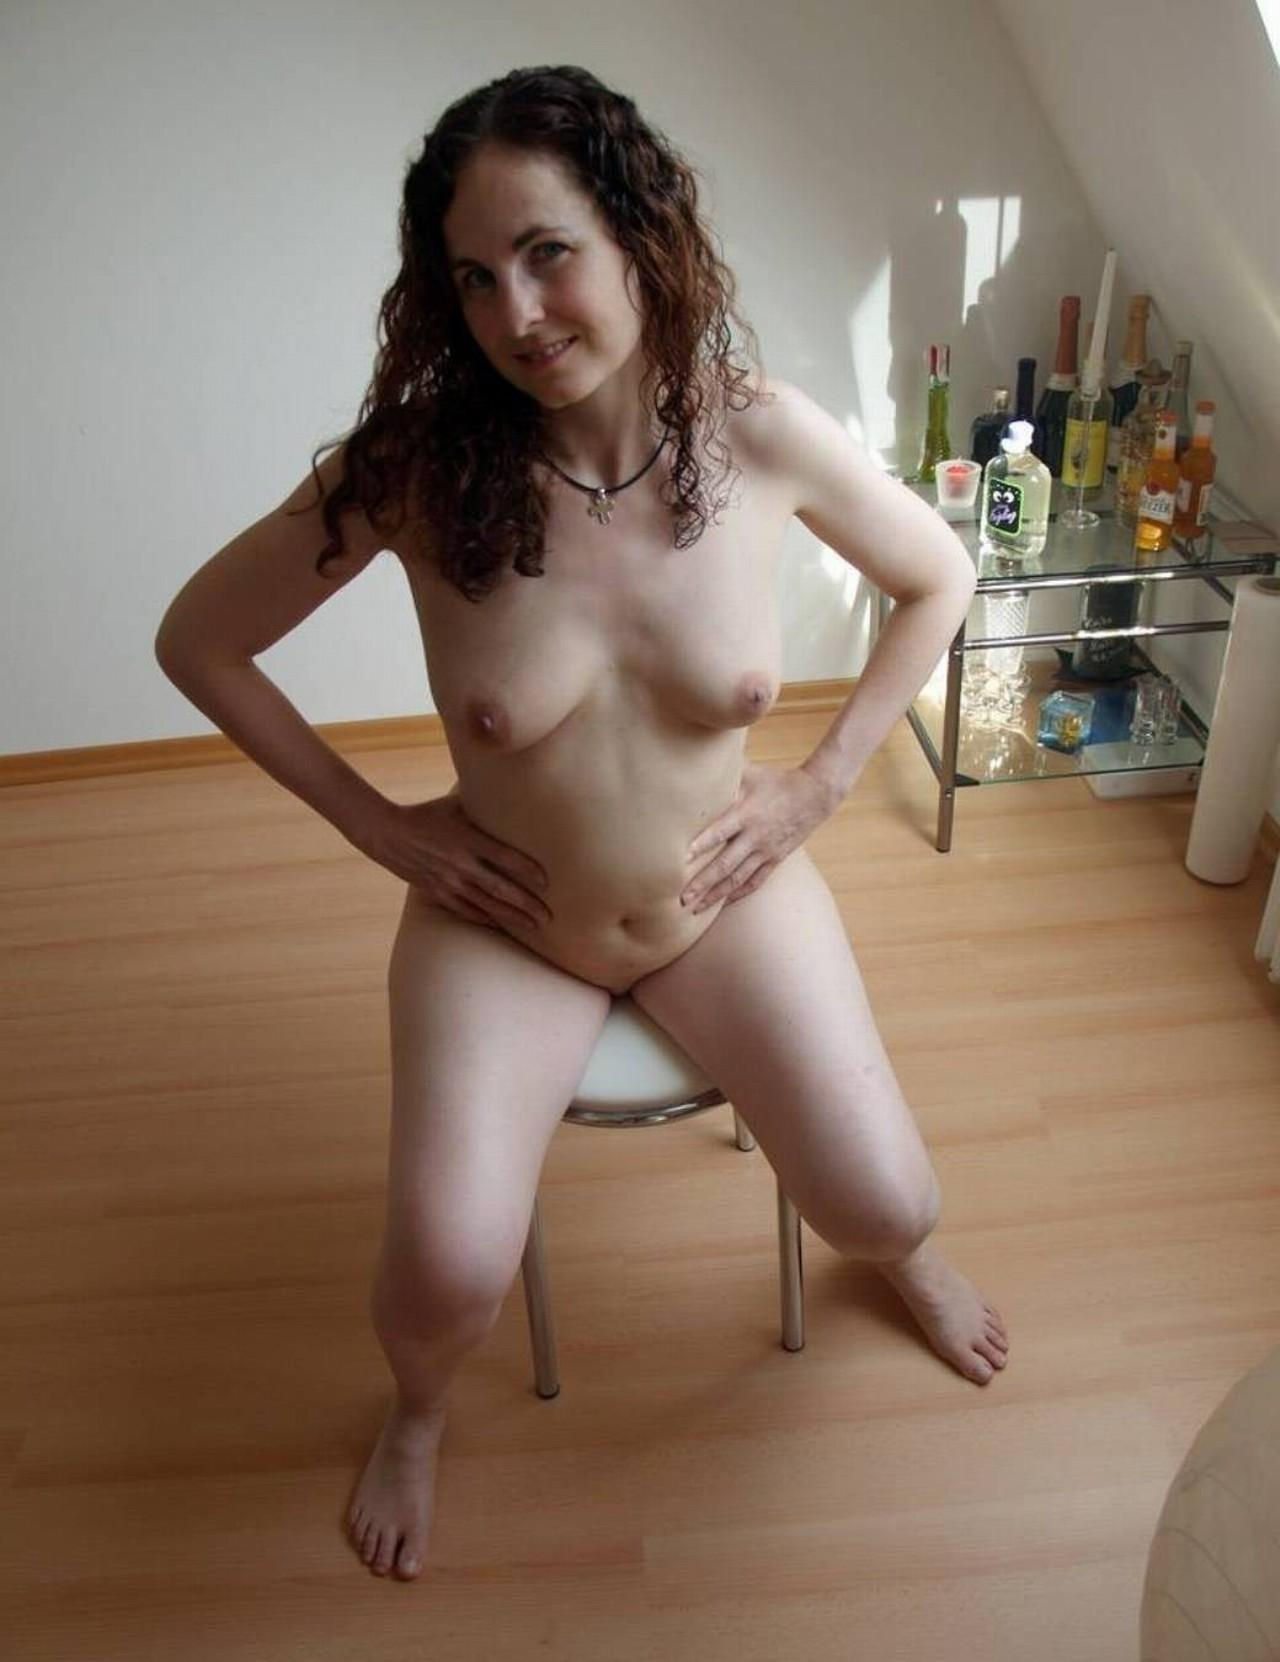 My naked wife has nice tits